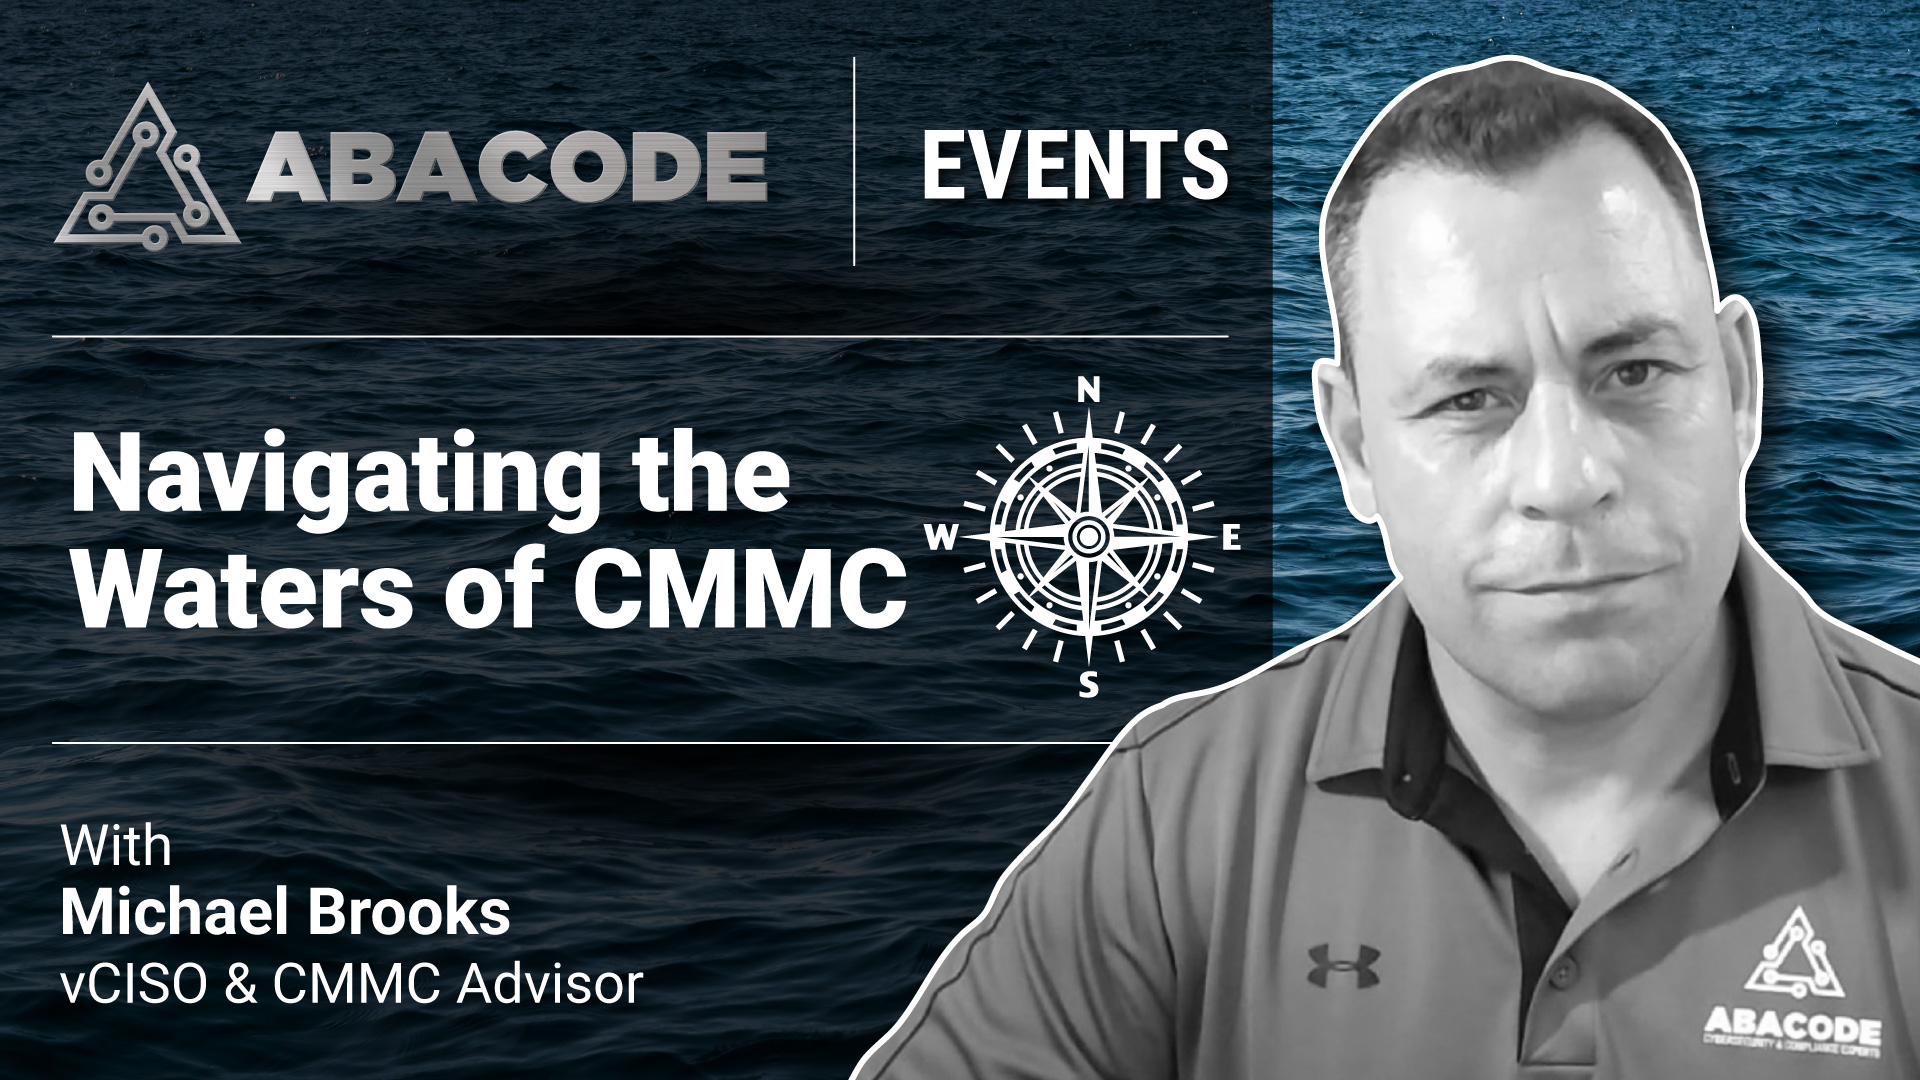 Abacode Event - Navigating the Waters of CMMC